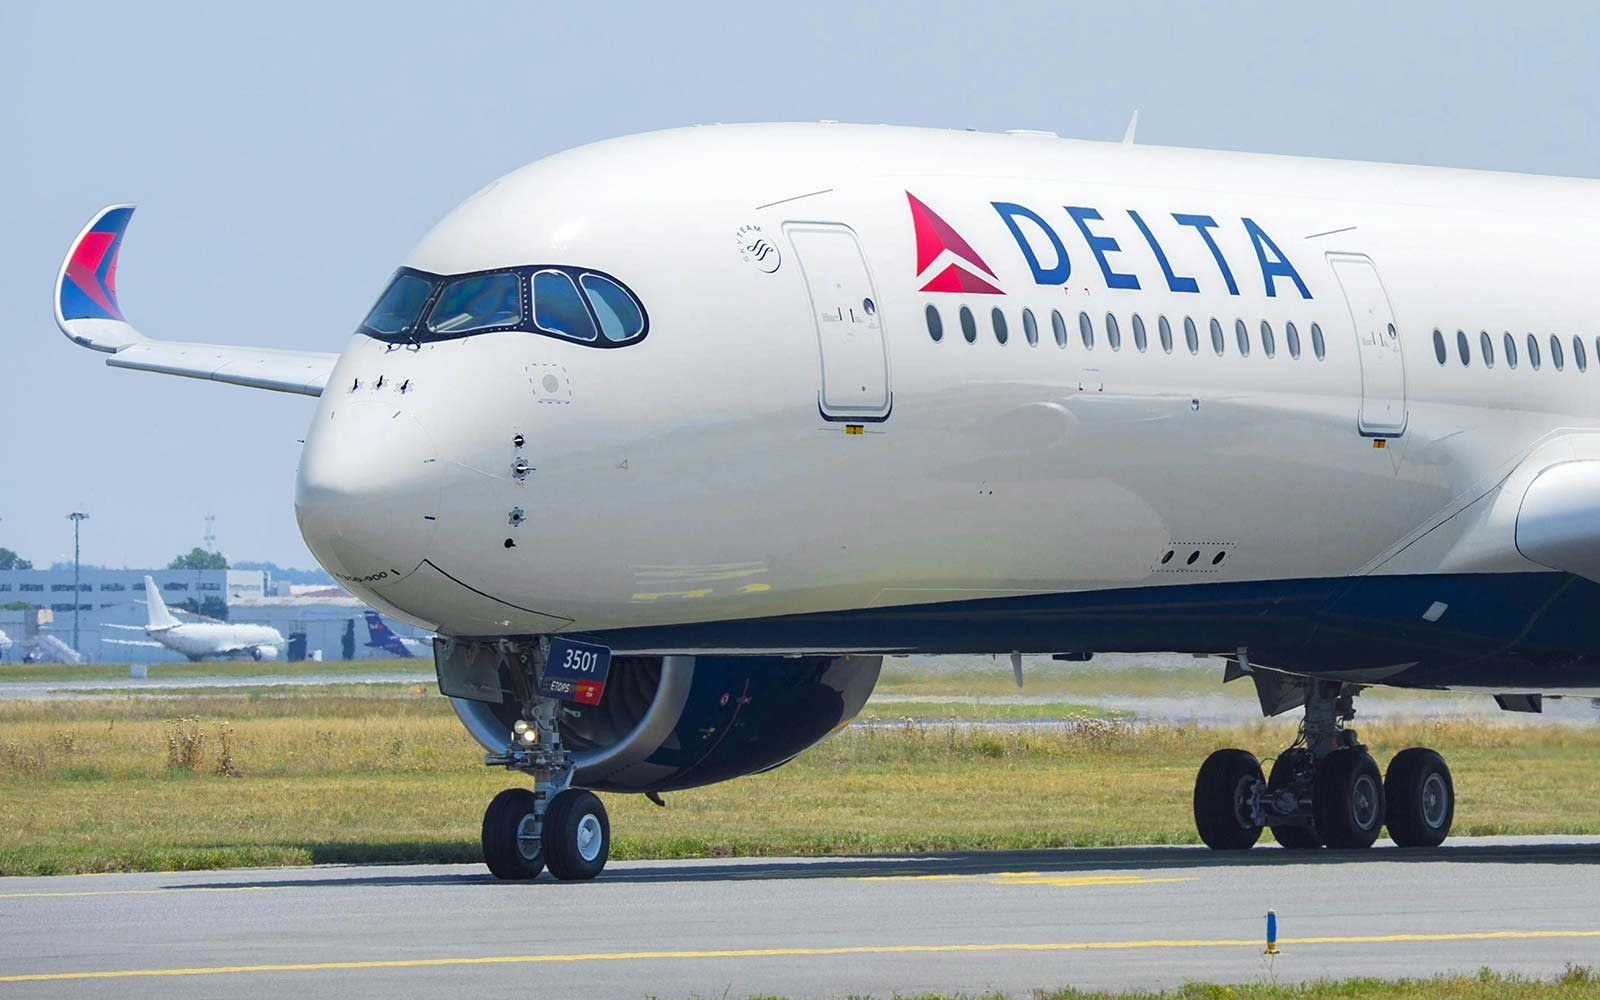 Delta Airlines image for Embargo Article